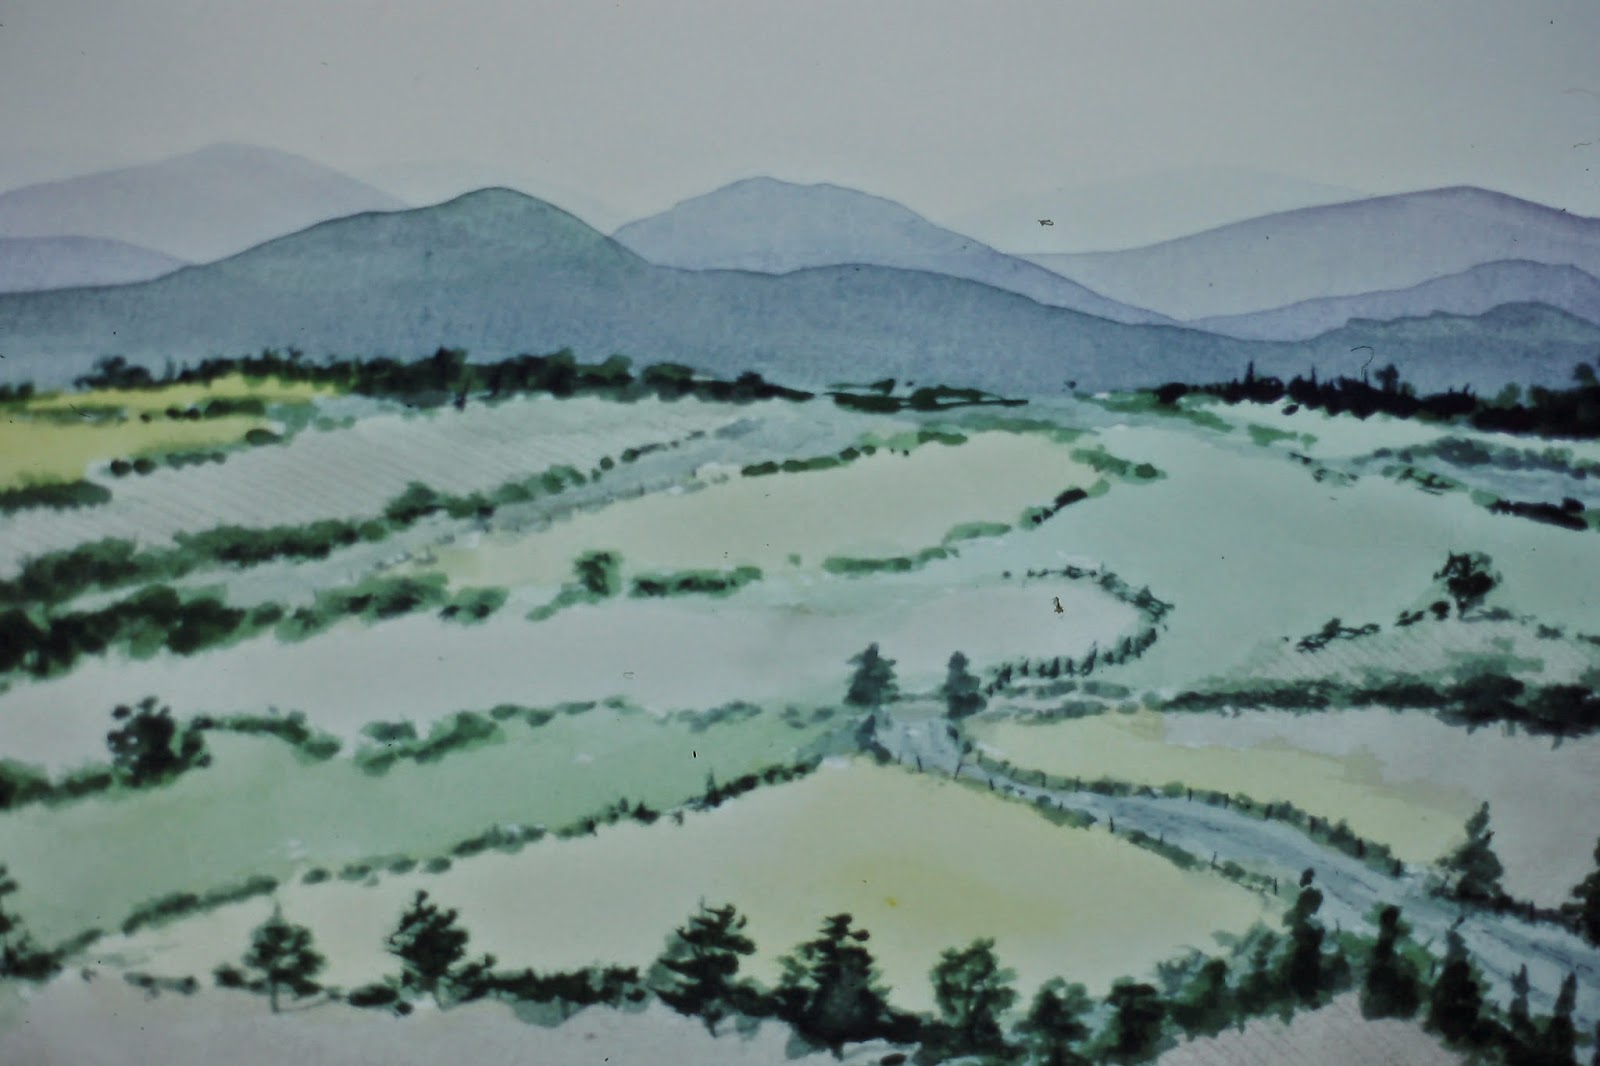 View of the Highlands, near Maryculter, Angus, Scotland  30x40 inches. Watercolor on paper, c. 1990.  In a private collection in Montrose, Scotland